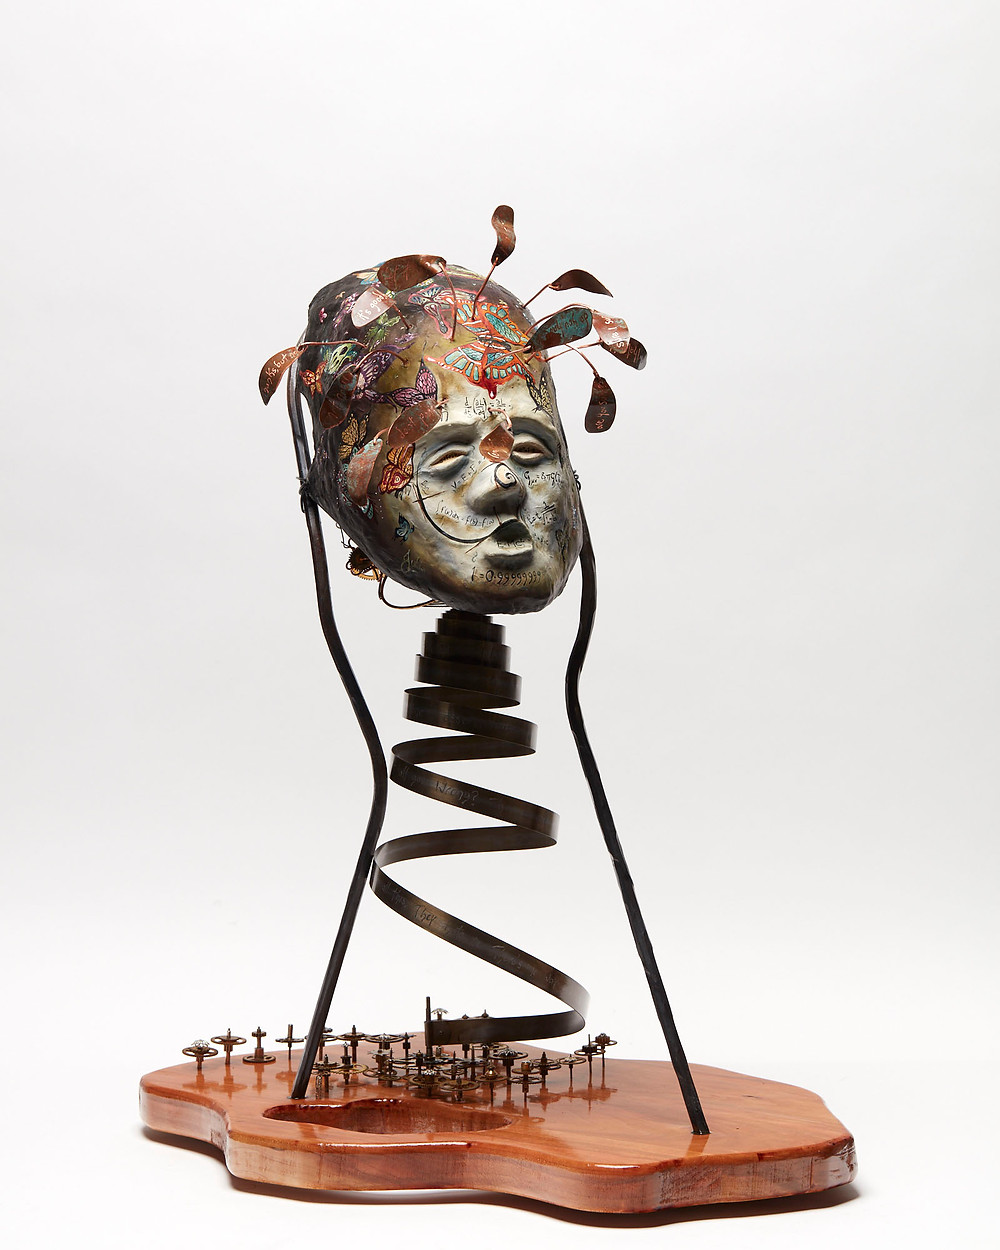 Sculpted oil painted head depicting the mental illness of anxiety